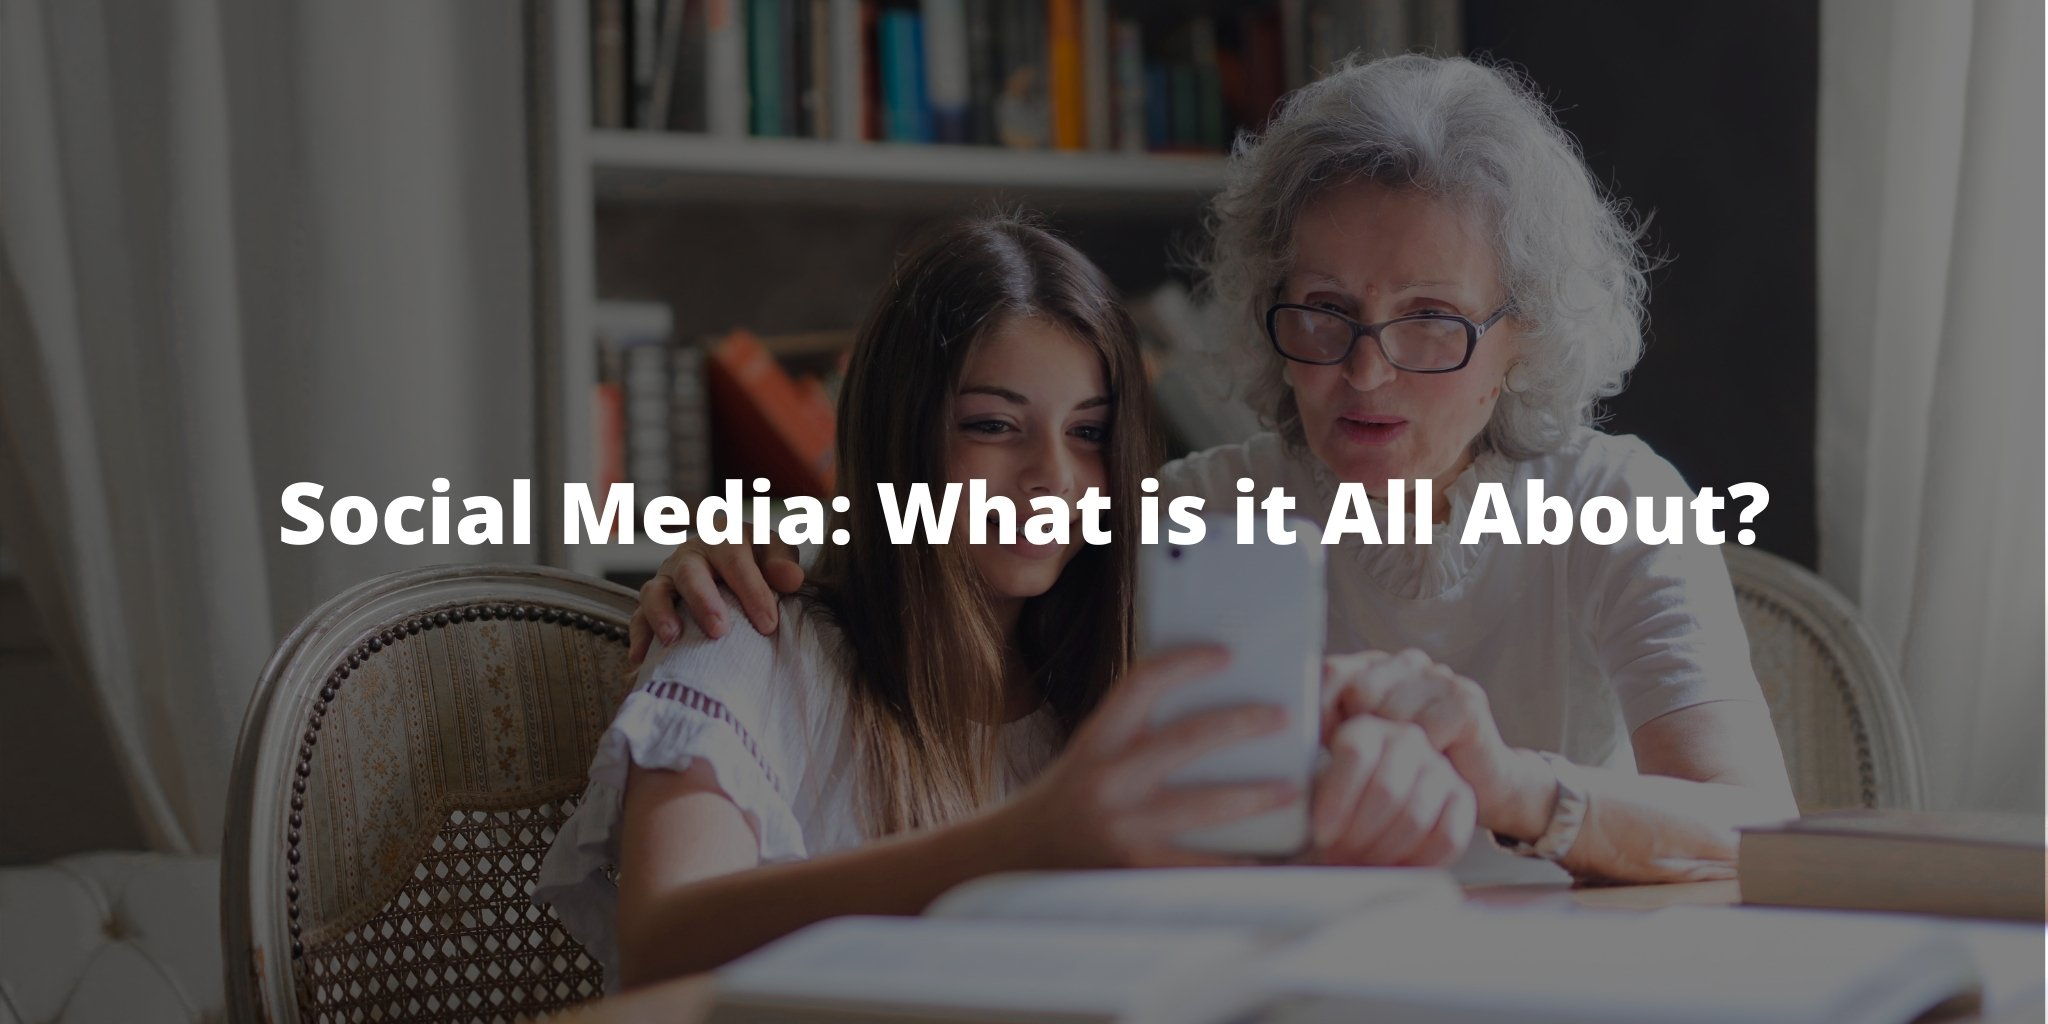 Social Media: What is it All About?